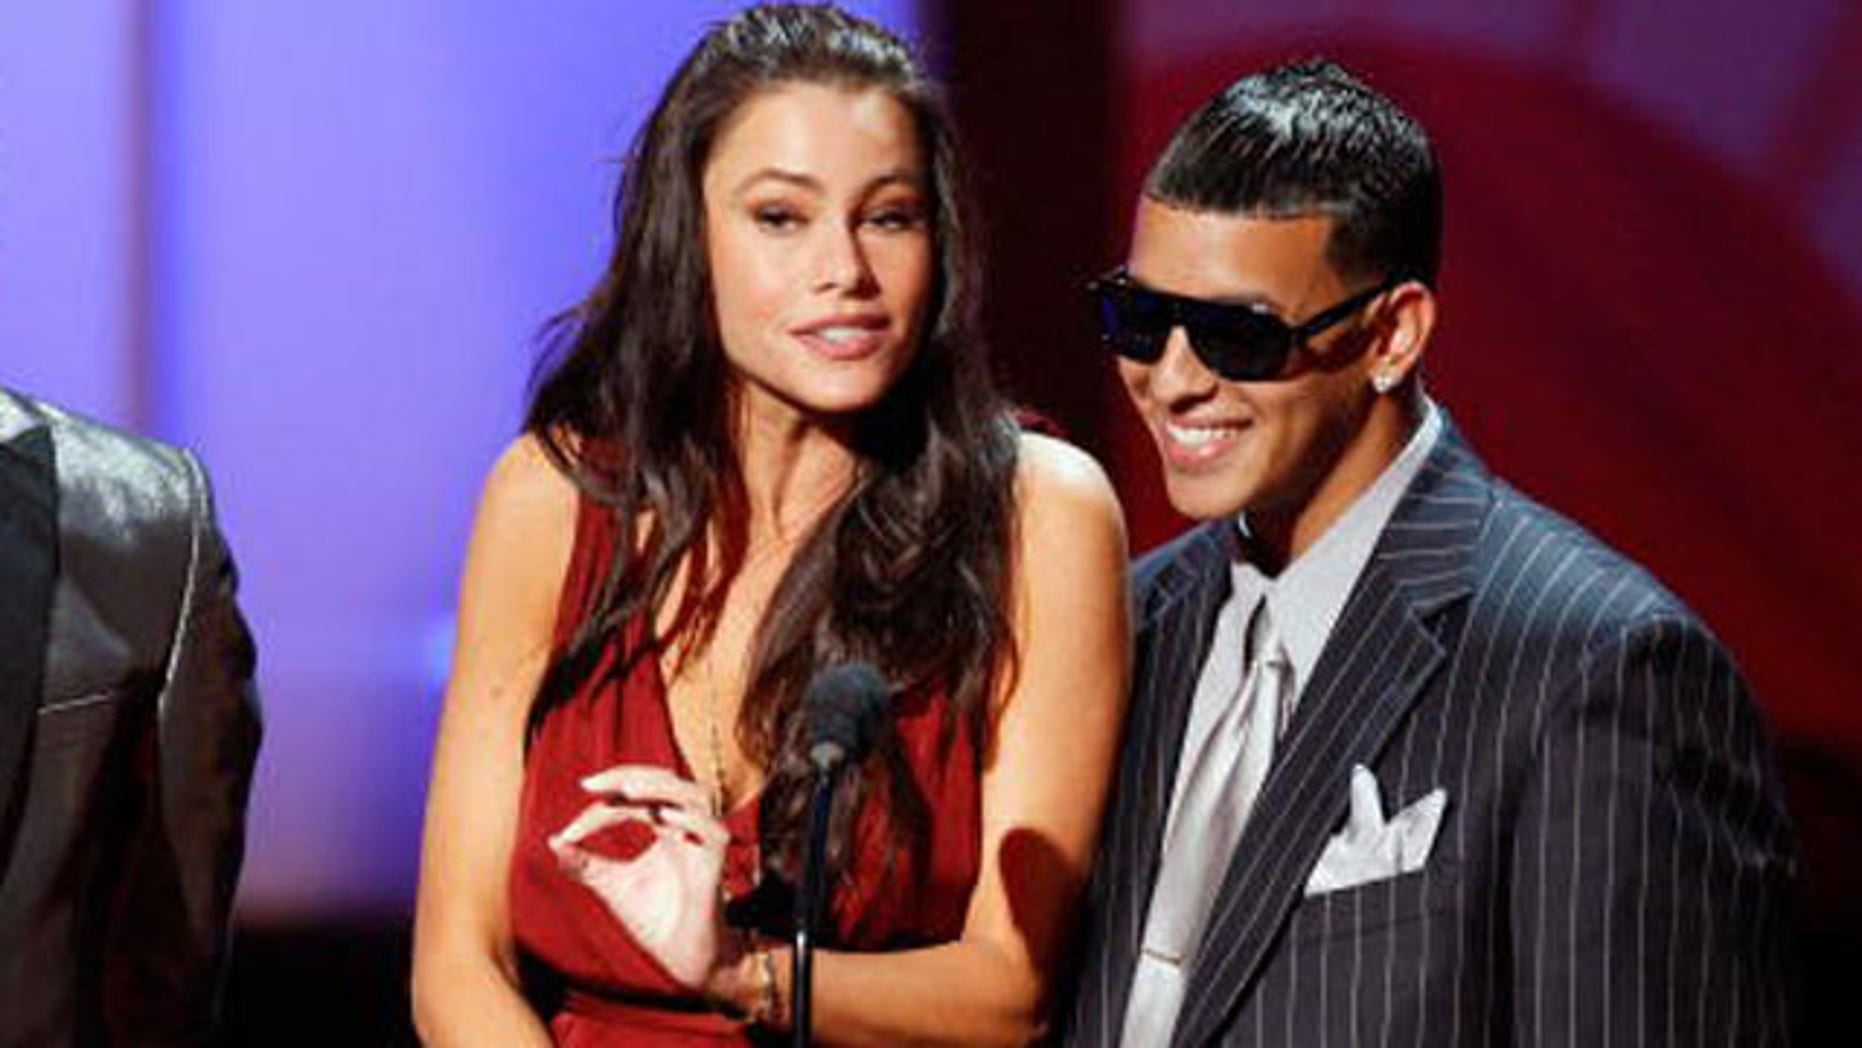 PASADENA, CA - AUGUST 17:  (L-R) Rapper Taboo, actress Sofia Vergara, and rapper Daddy Yankee present the Cheetah Girls performance onstage during the 2008 ALMA Awards at the Pasadena Civic Auditorium on August 17, 2008 in Pasadena, California.  (Photo by Vince Bucci/Getty Images)